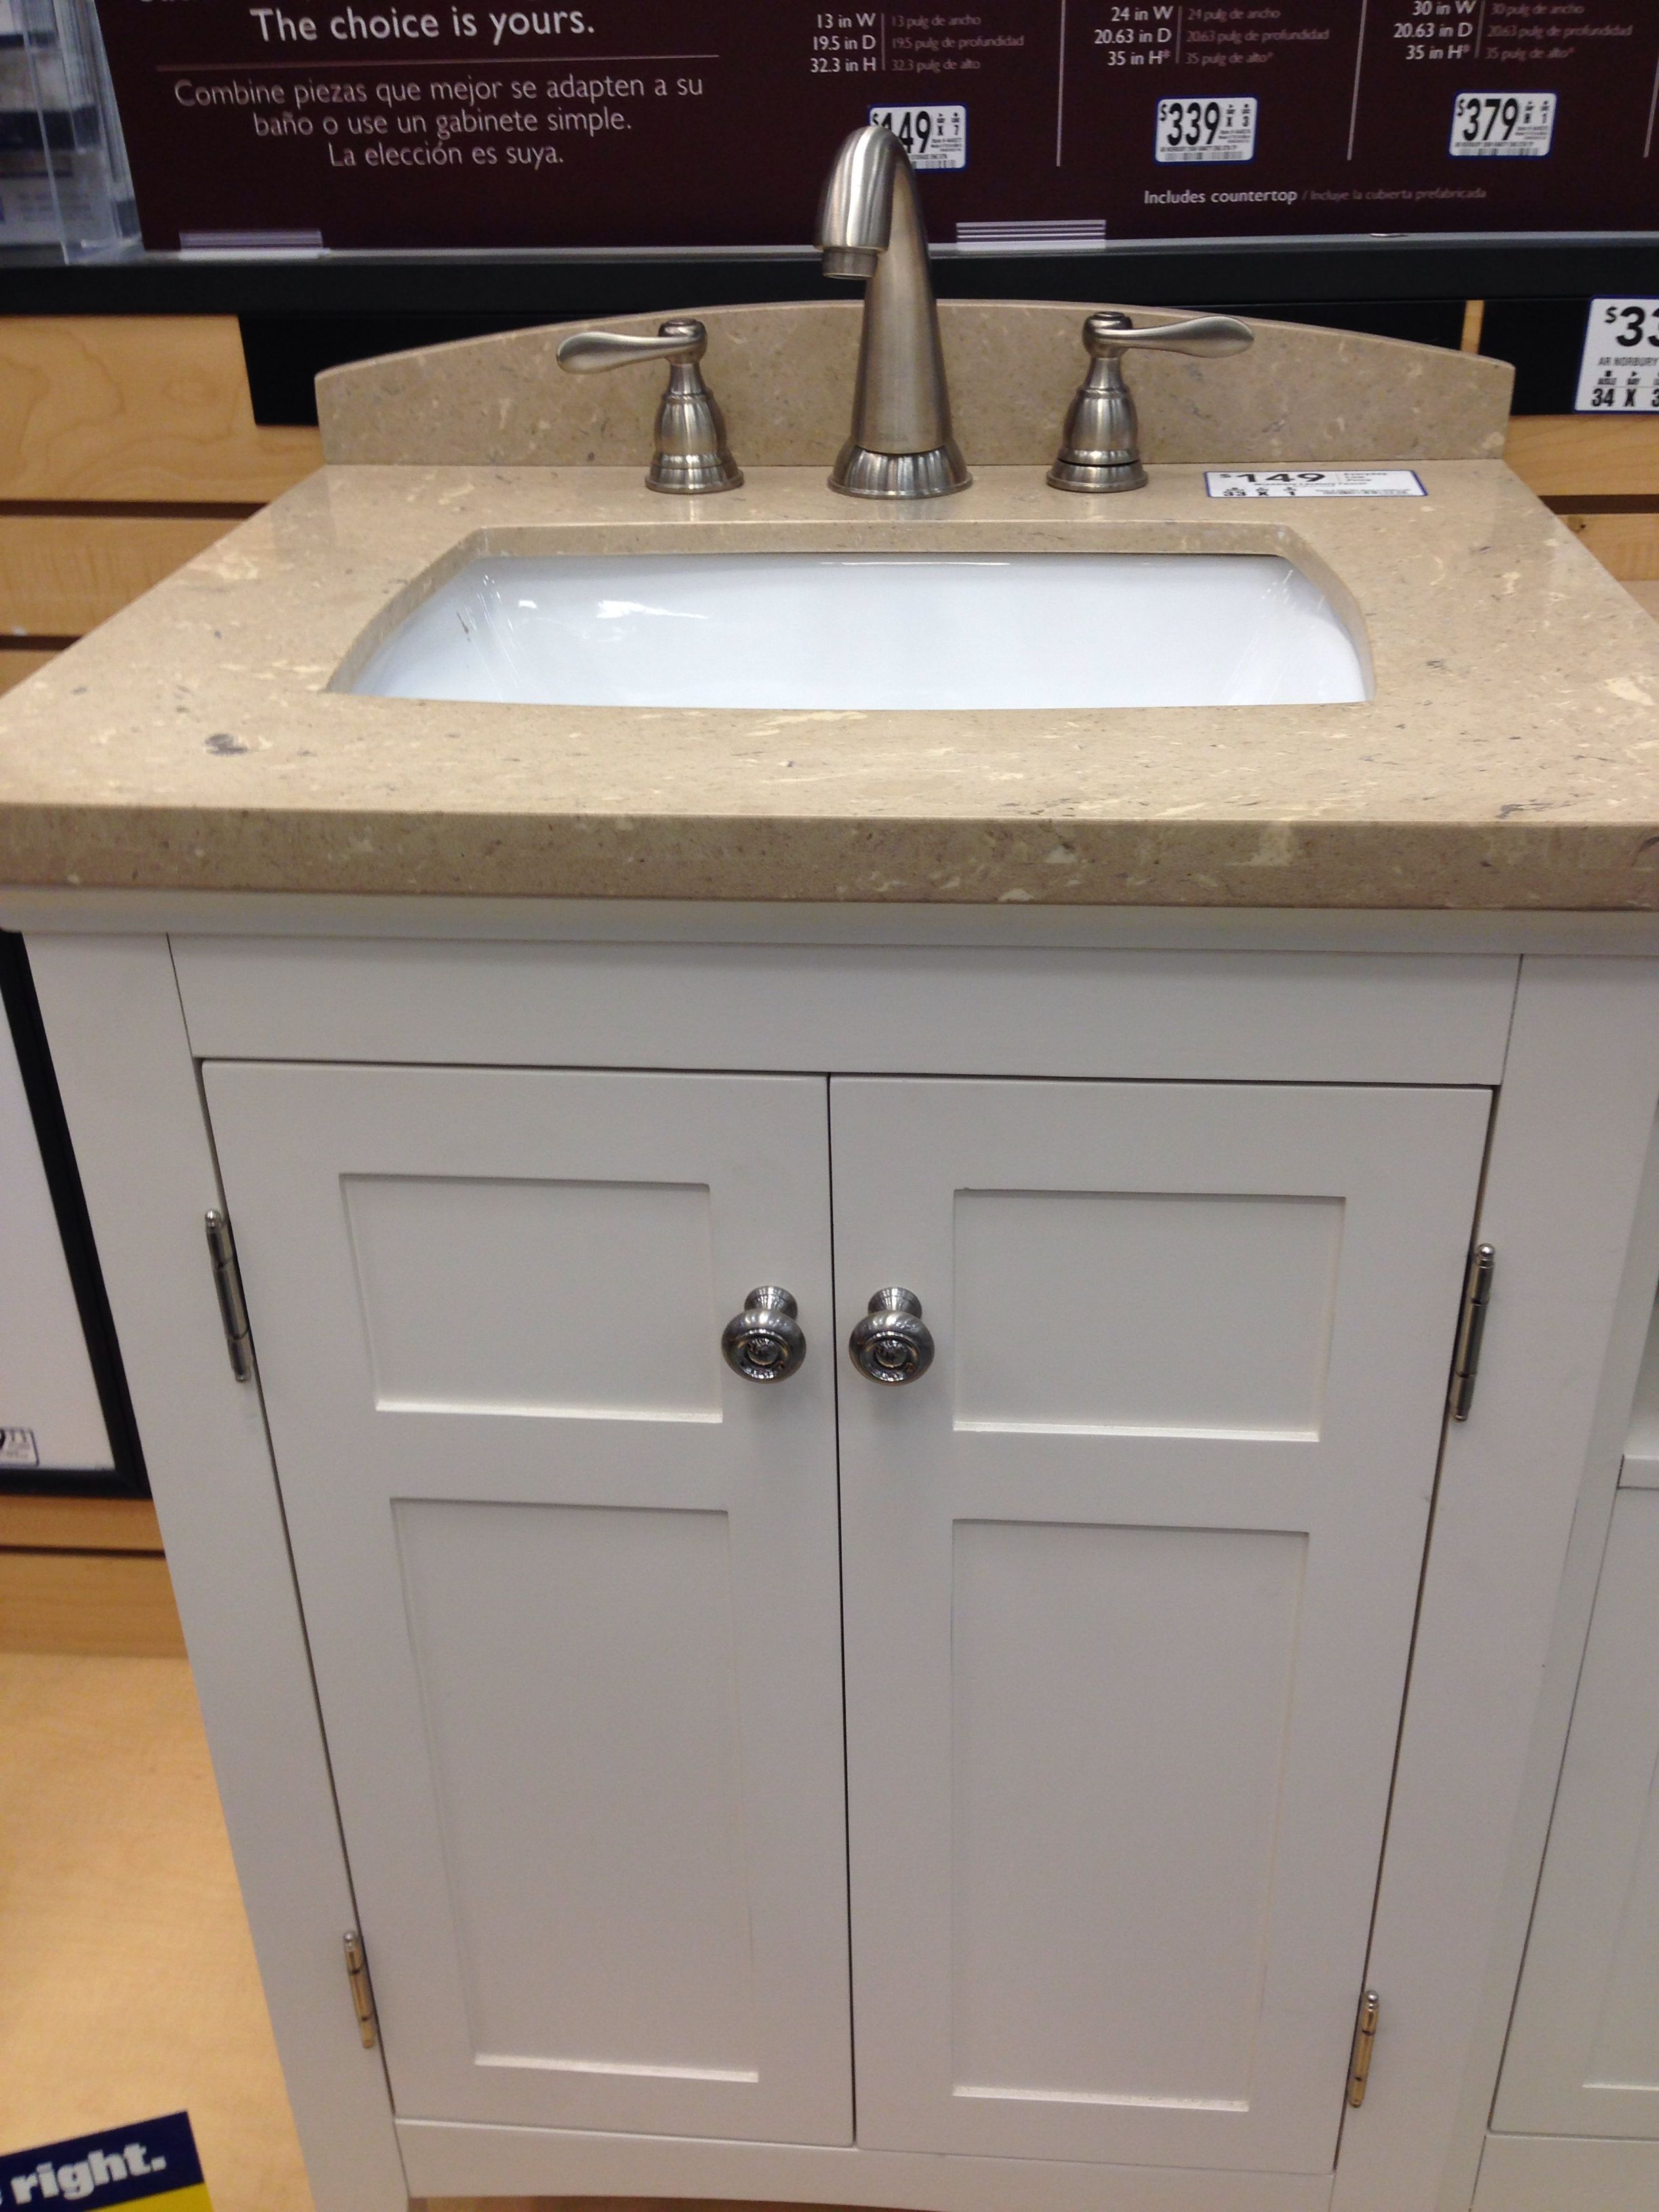 Lowes Sink For New Bathroom 2 Of These Side By Side We Have To